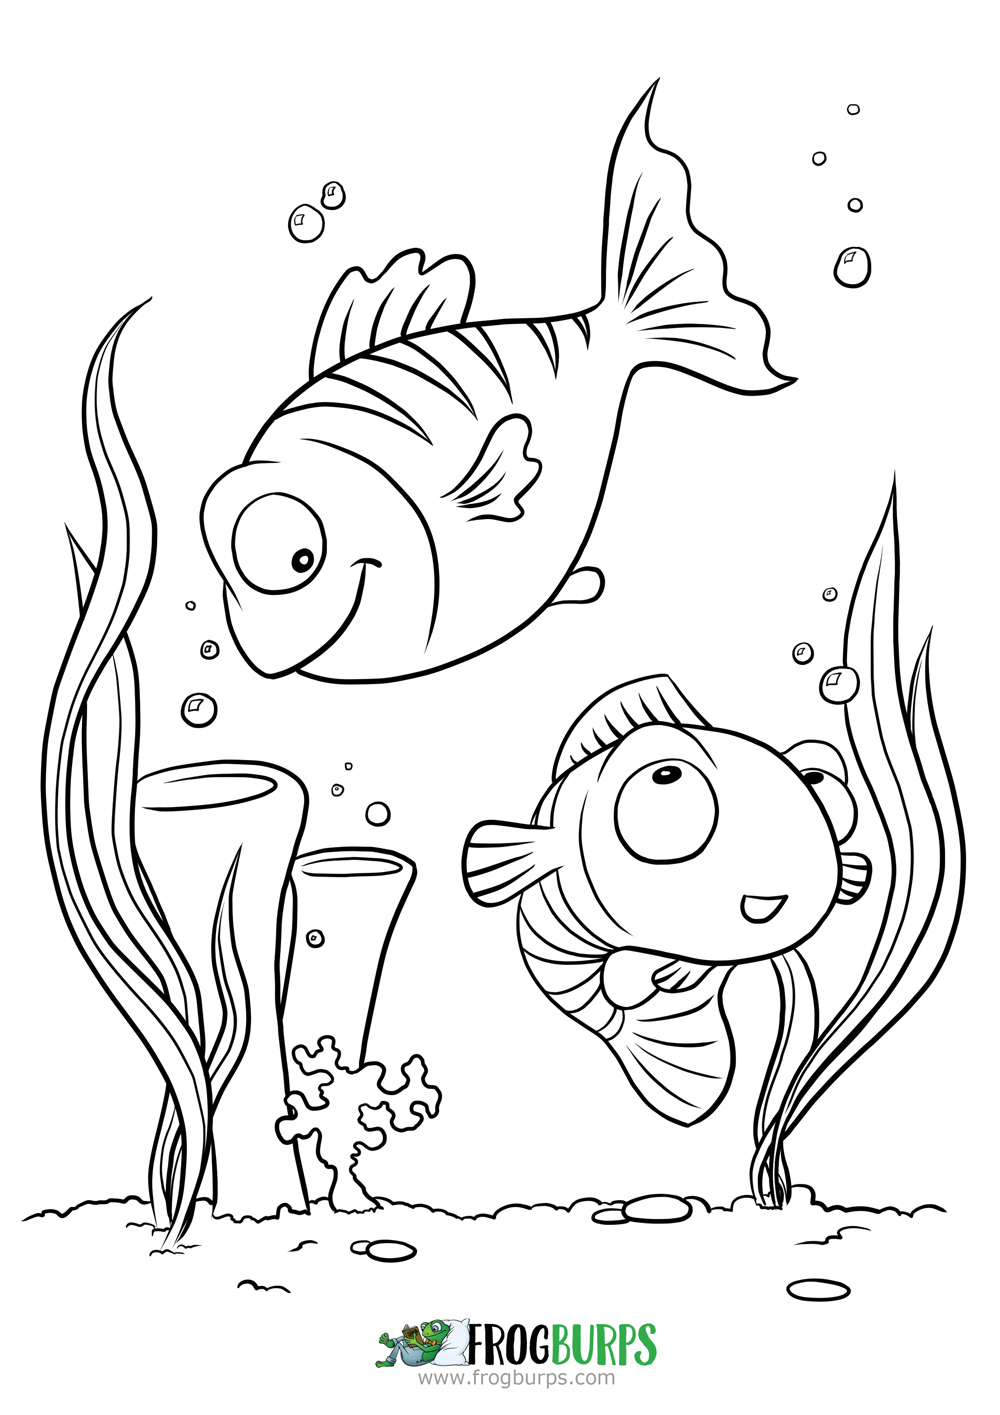 Fish | Coloring Page